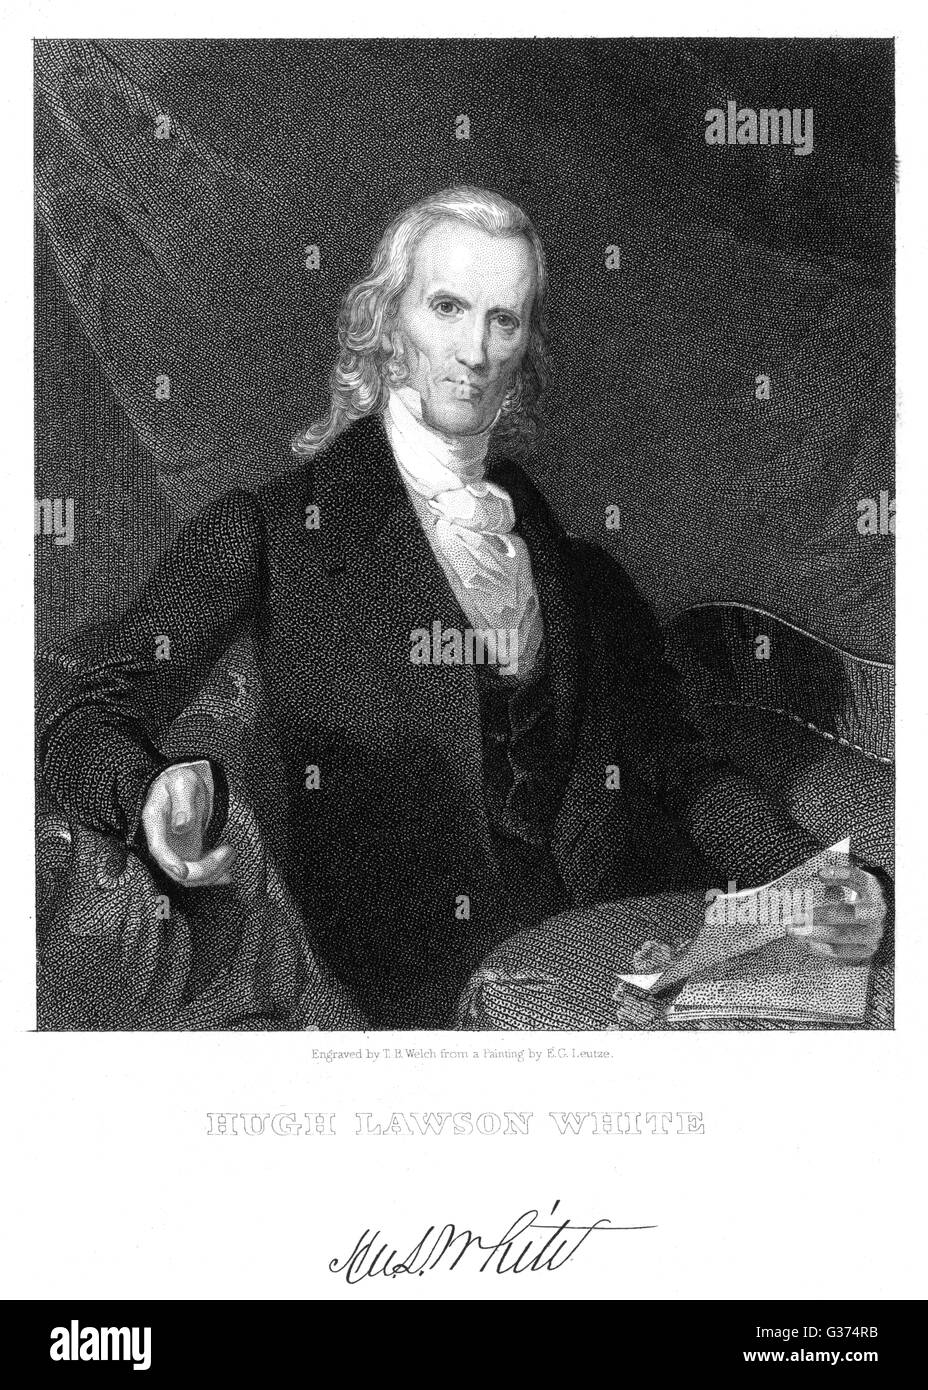 HUGH LAWSON WHITE American statesman and judge         Date: 1773 - 1840 - Stock Image